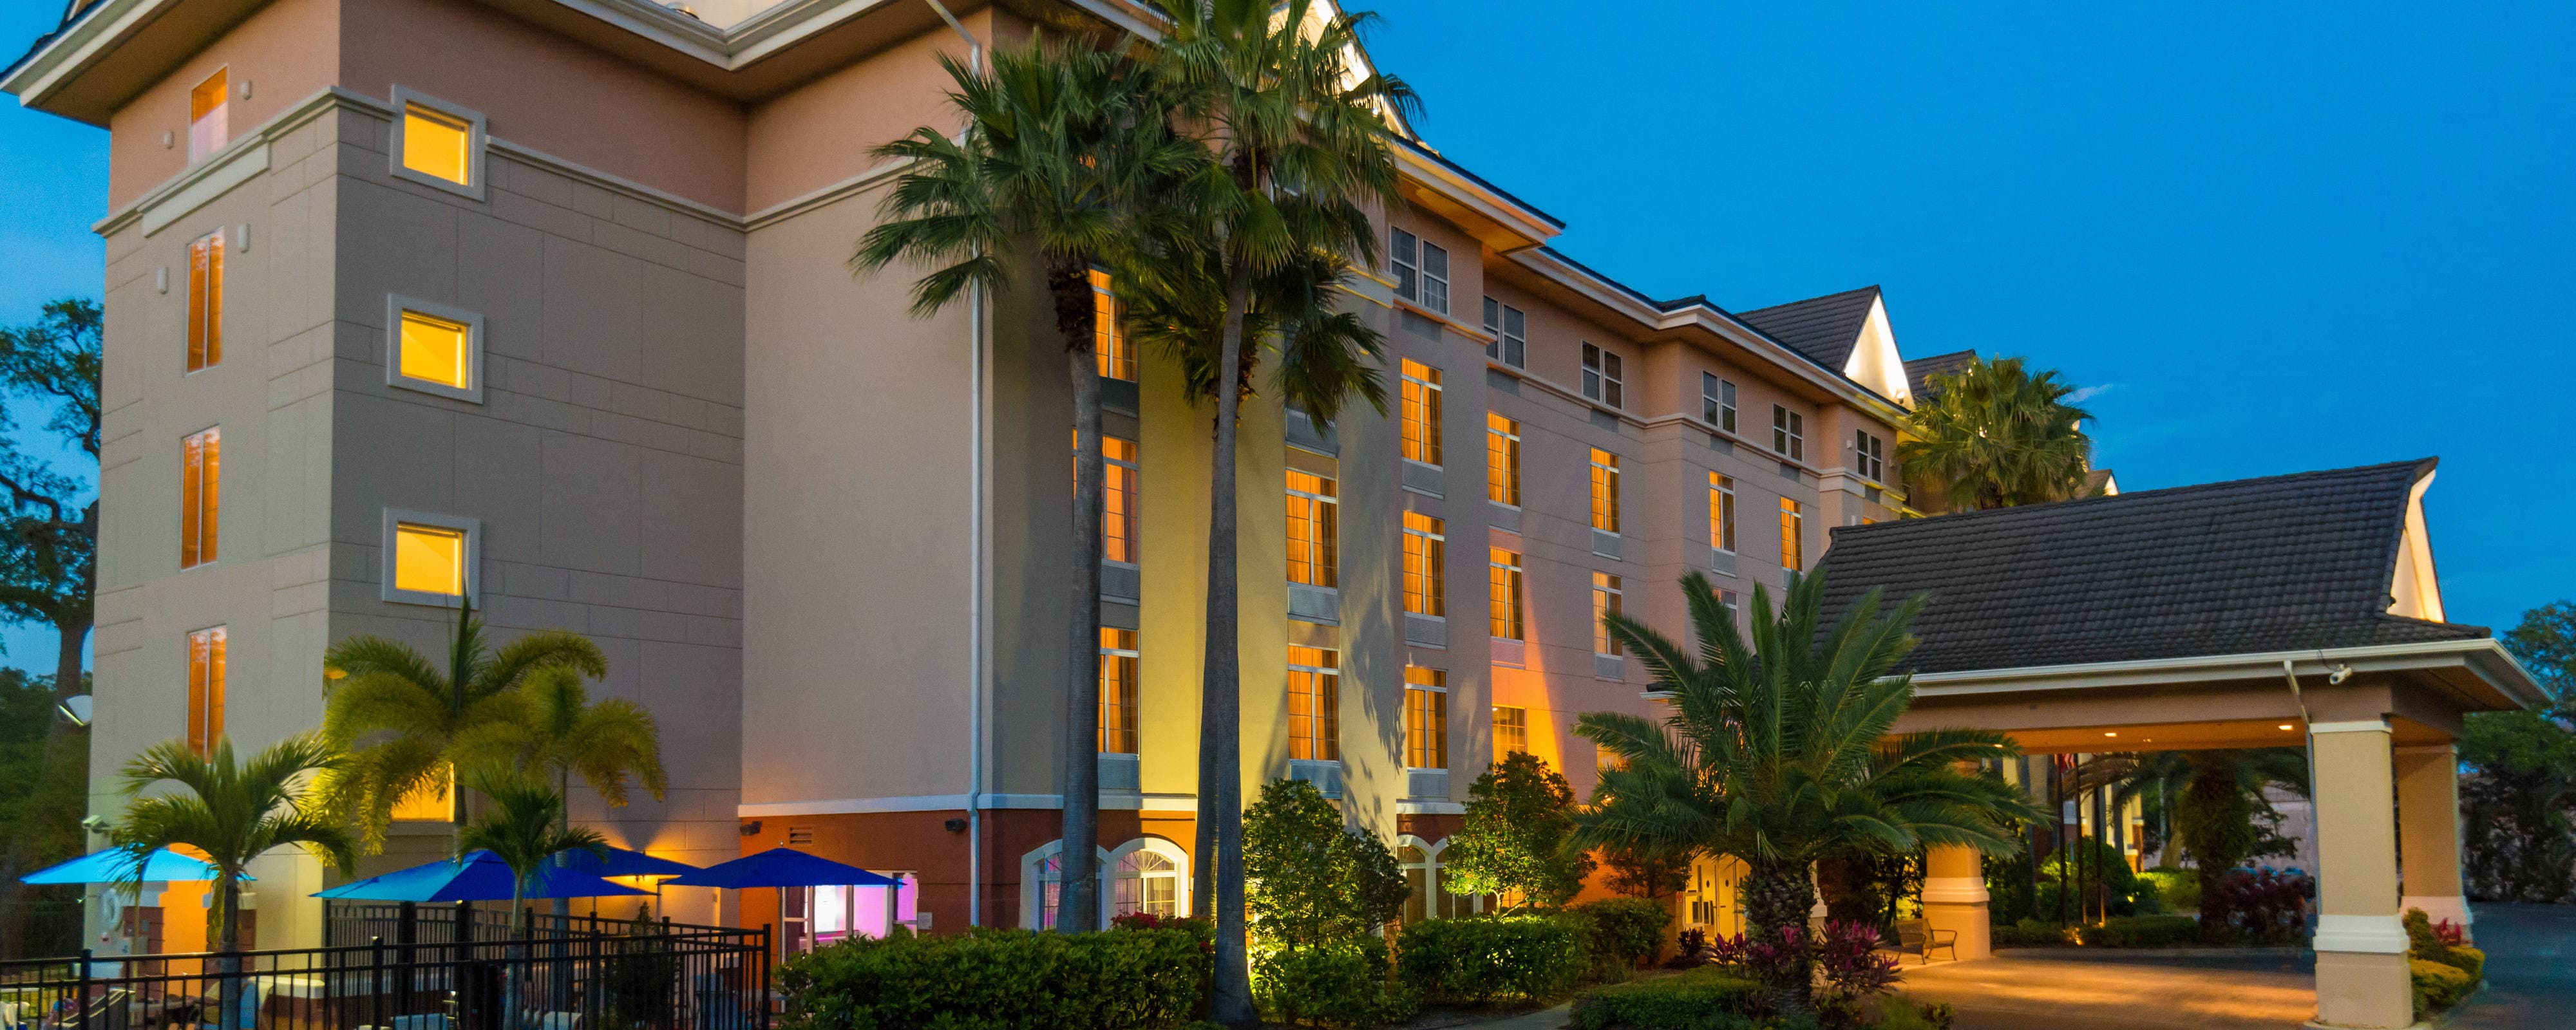 Fairfield Inn & Suites Clearwater hotel exterior